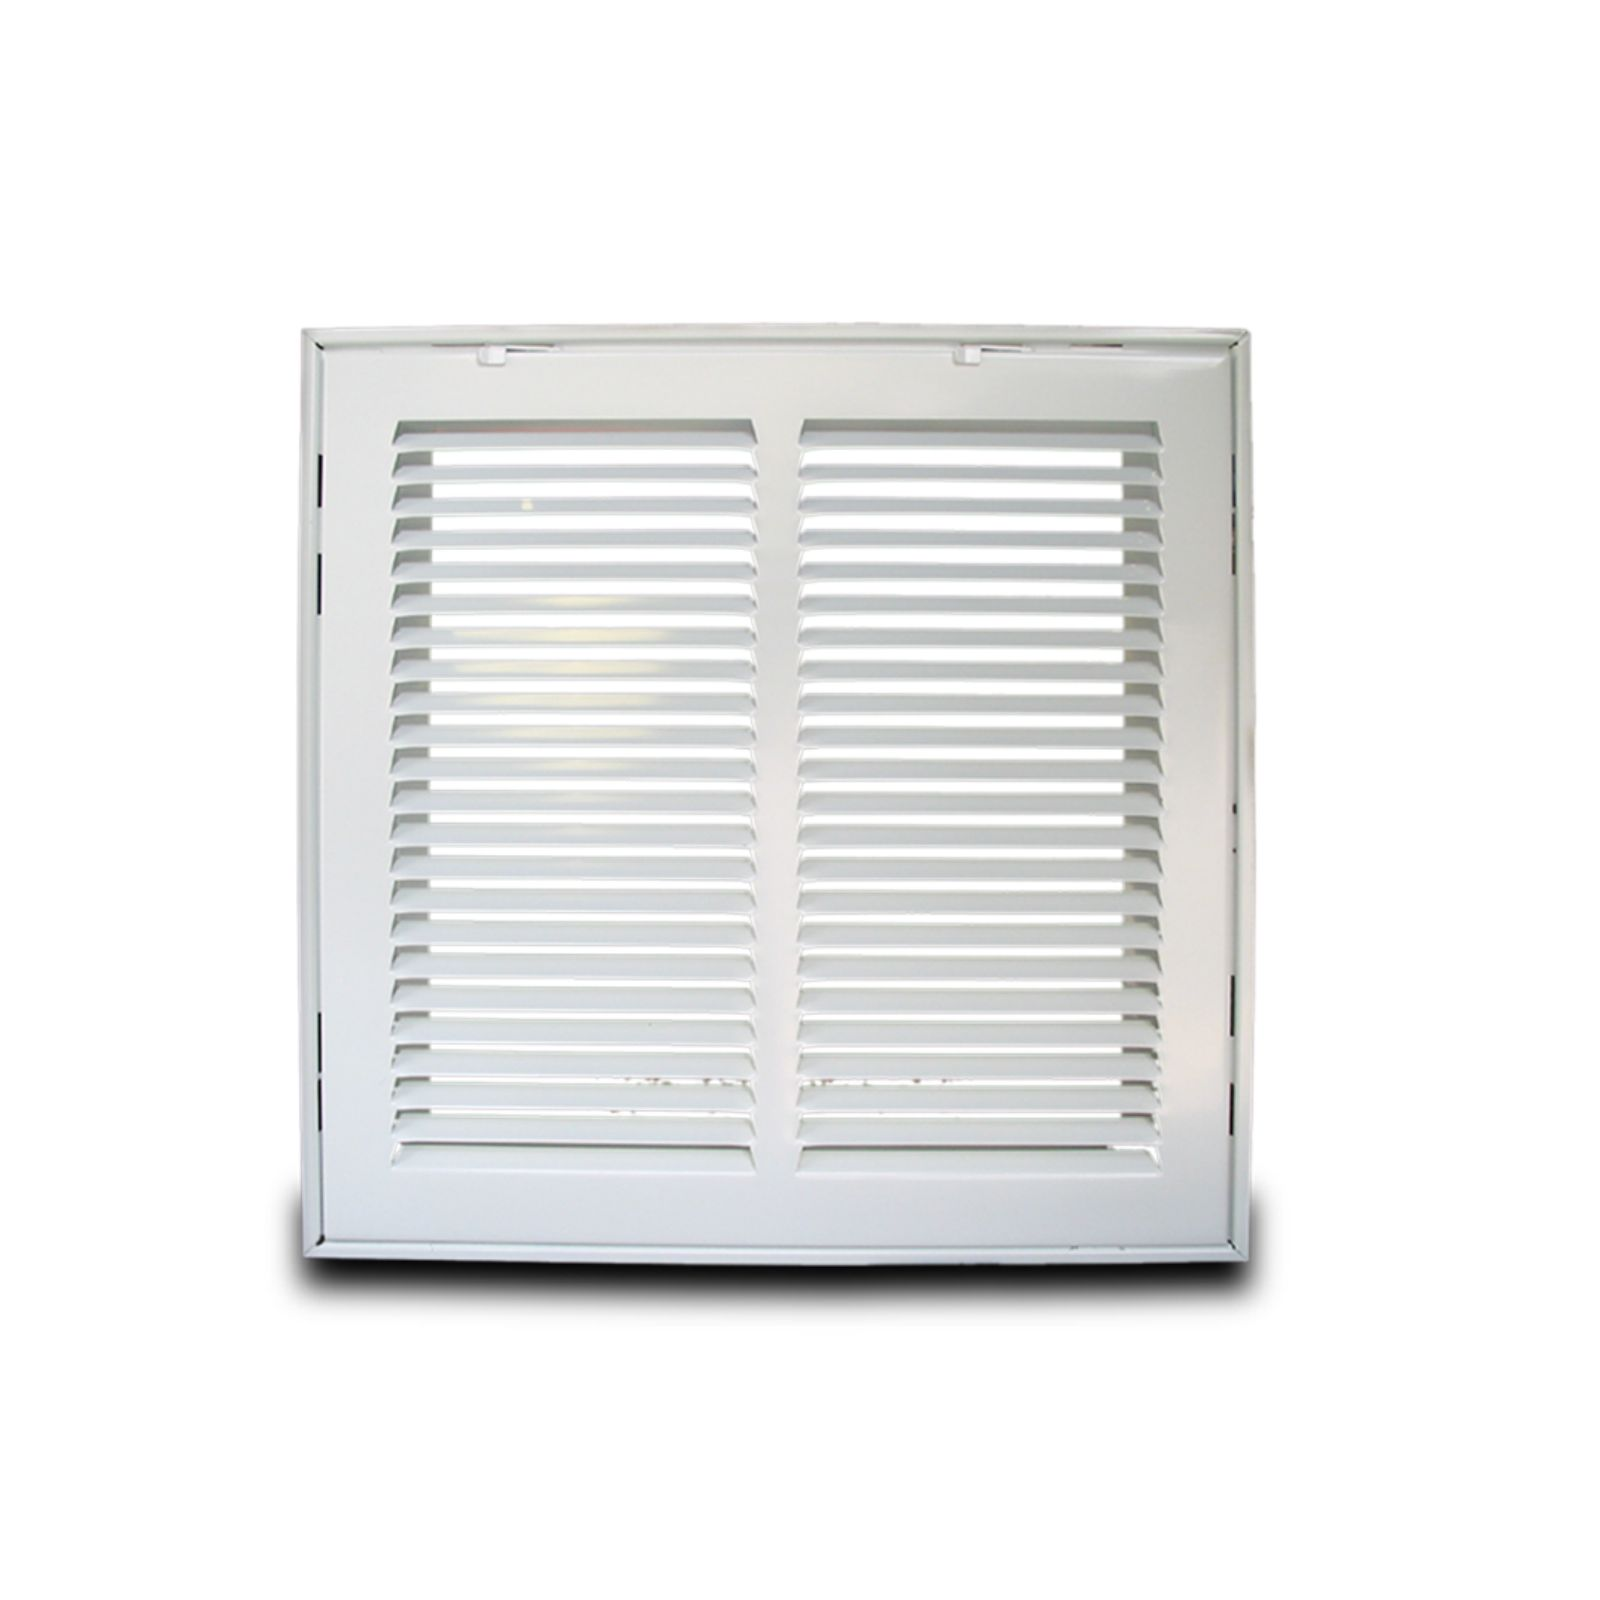 "Metal-Fab MFRFG2020W - Metal Fab Return Filter Grille, White, 20"" X 20"""